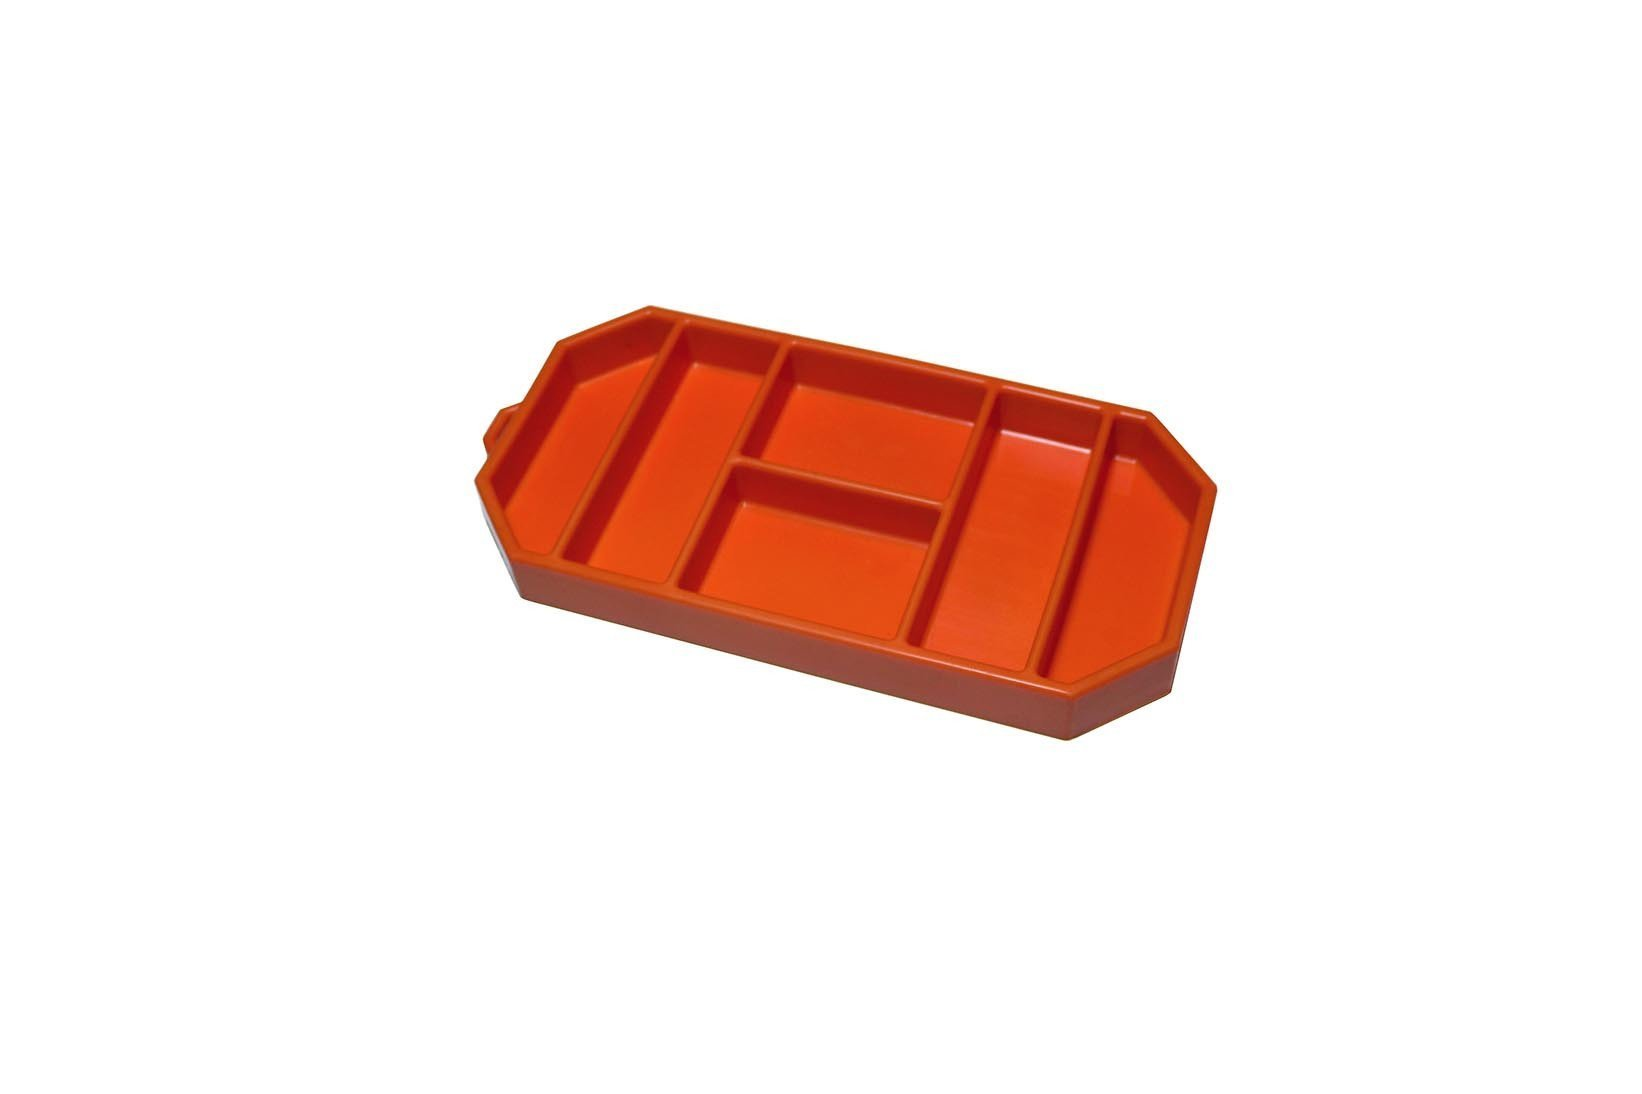 Grypmat RFGM-CR03S Tool Tray, Grypmat, 6 x 12 in, Rectangular, 1 in Thick, Chemical Resistant, Silicone, Orange, Each